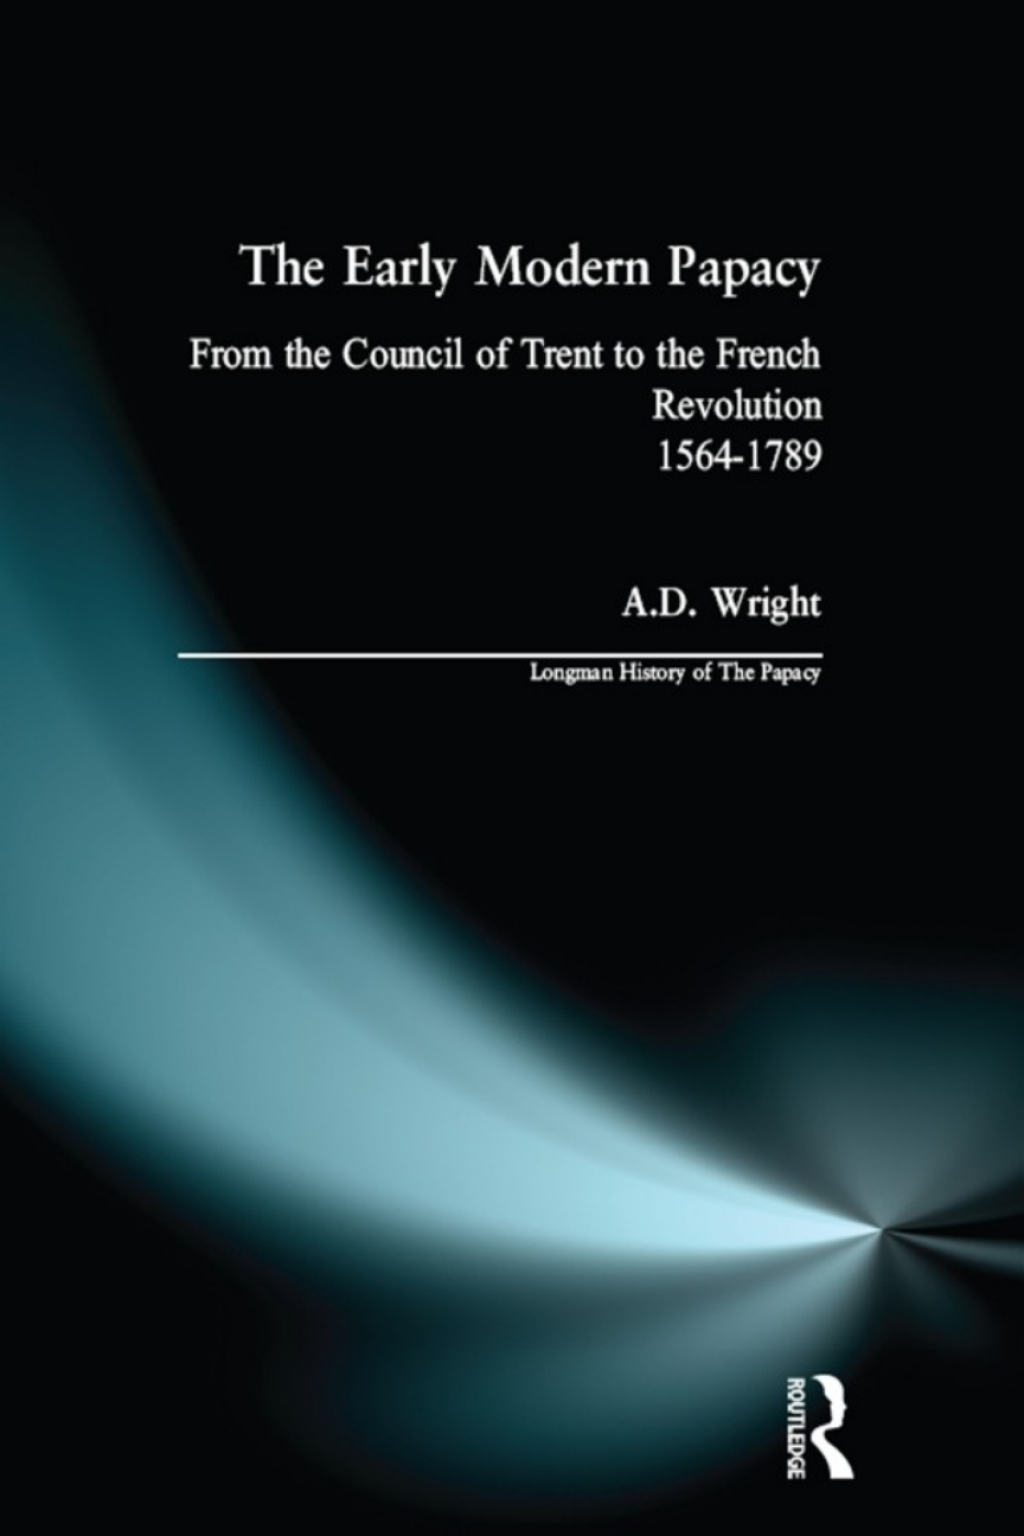 The Early Modern Papacy (eBook)